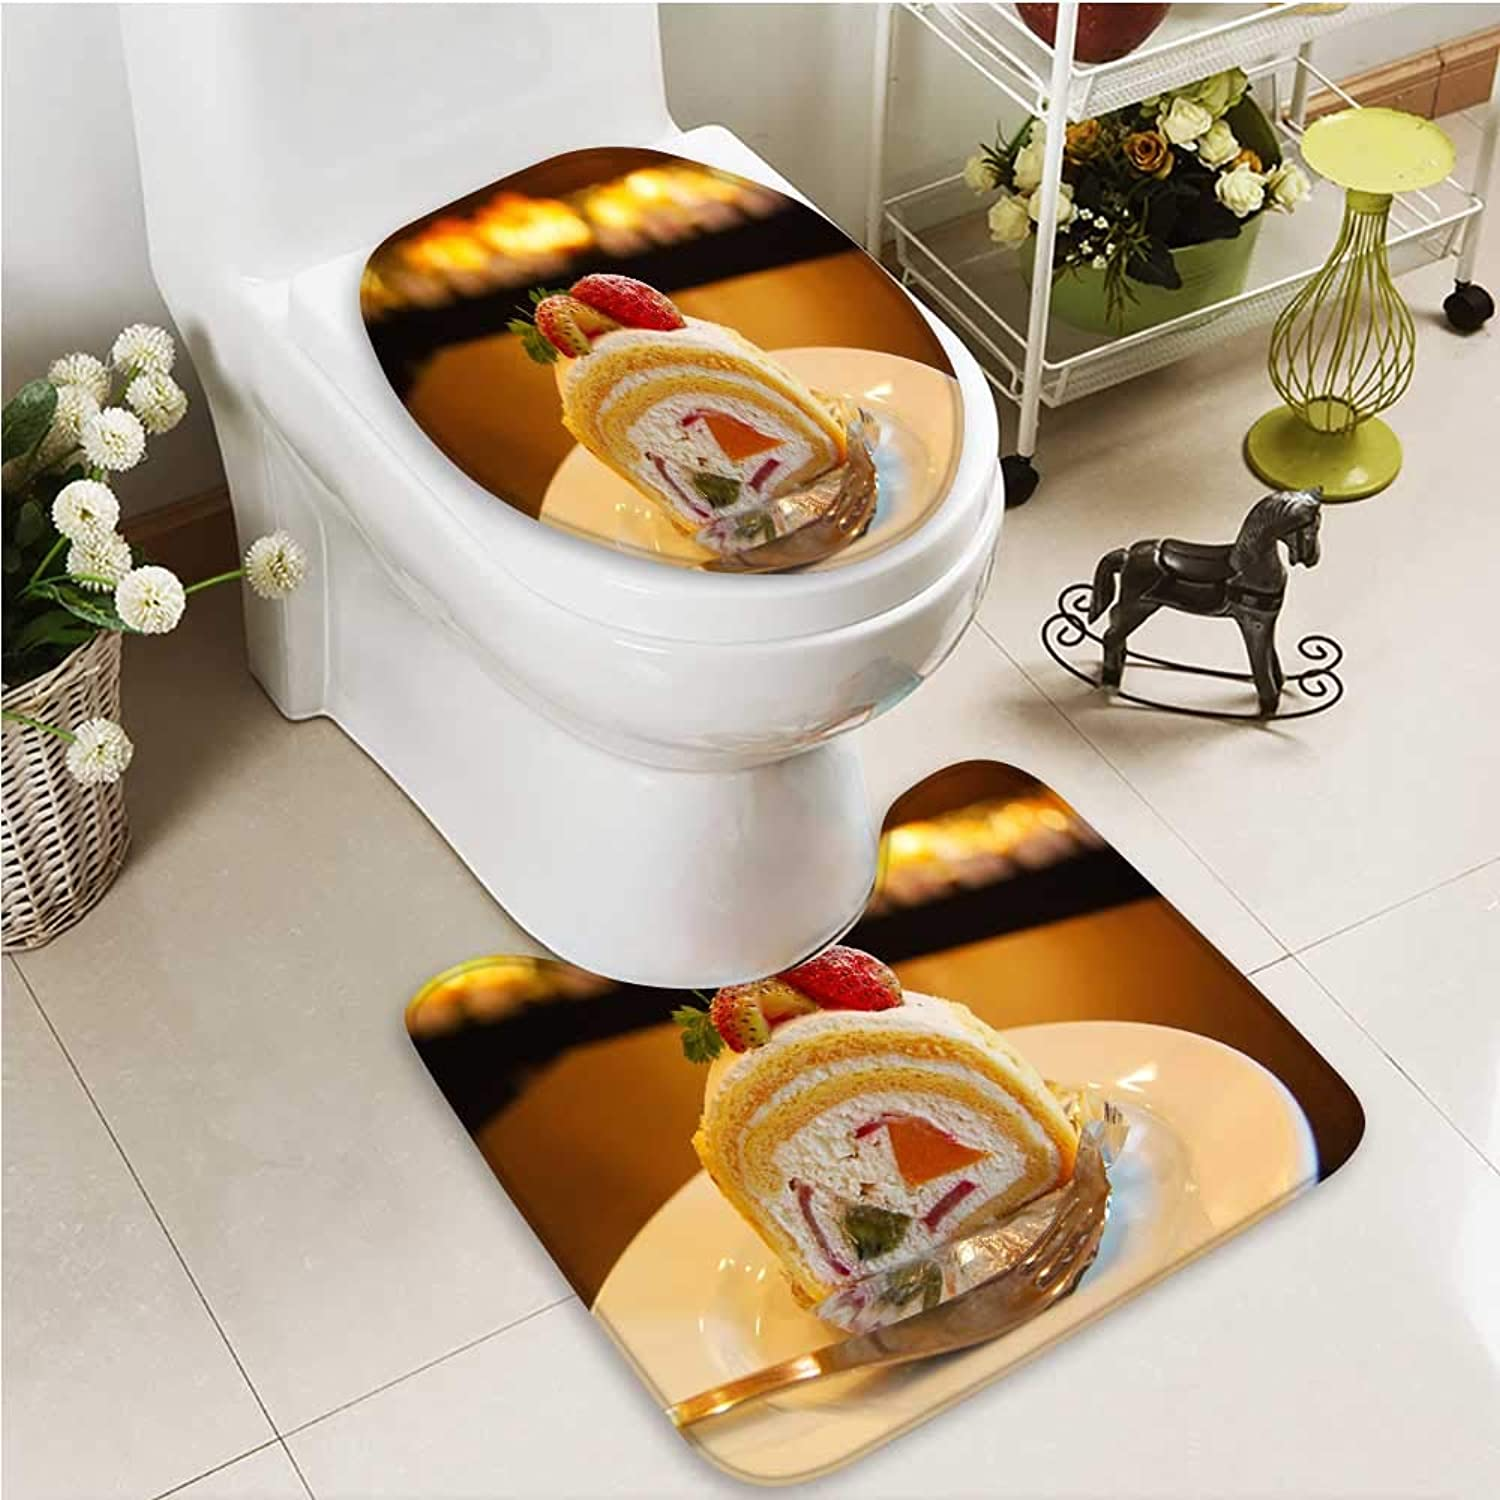 Printsonne Bathroom Non-Slip Floor Mat A Sweet and Creamy Cake with High Absorbency